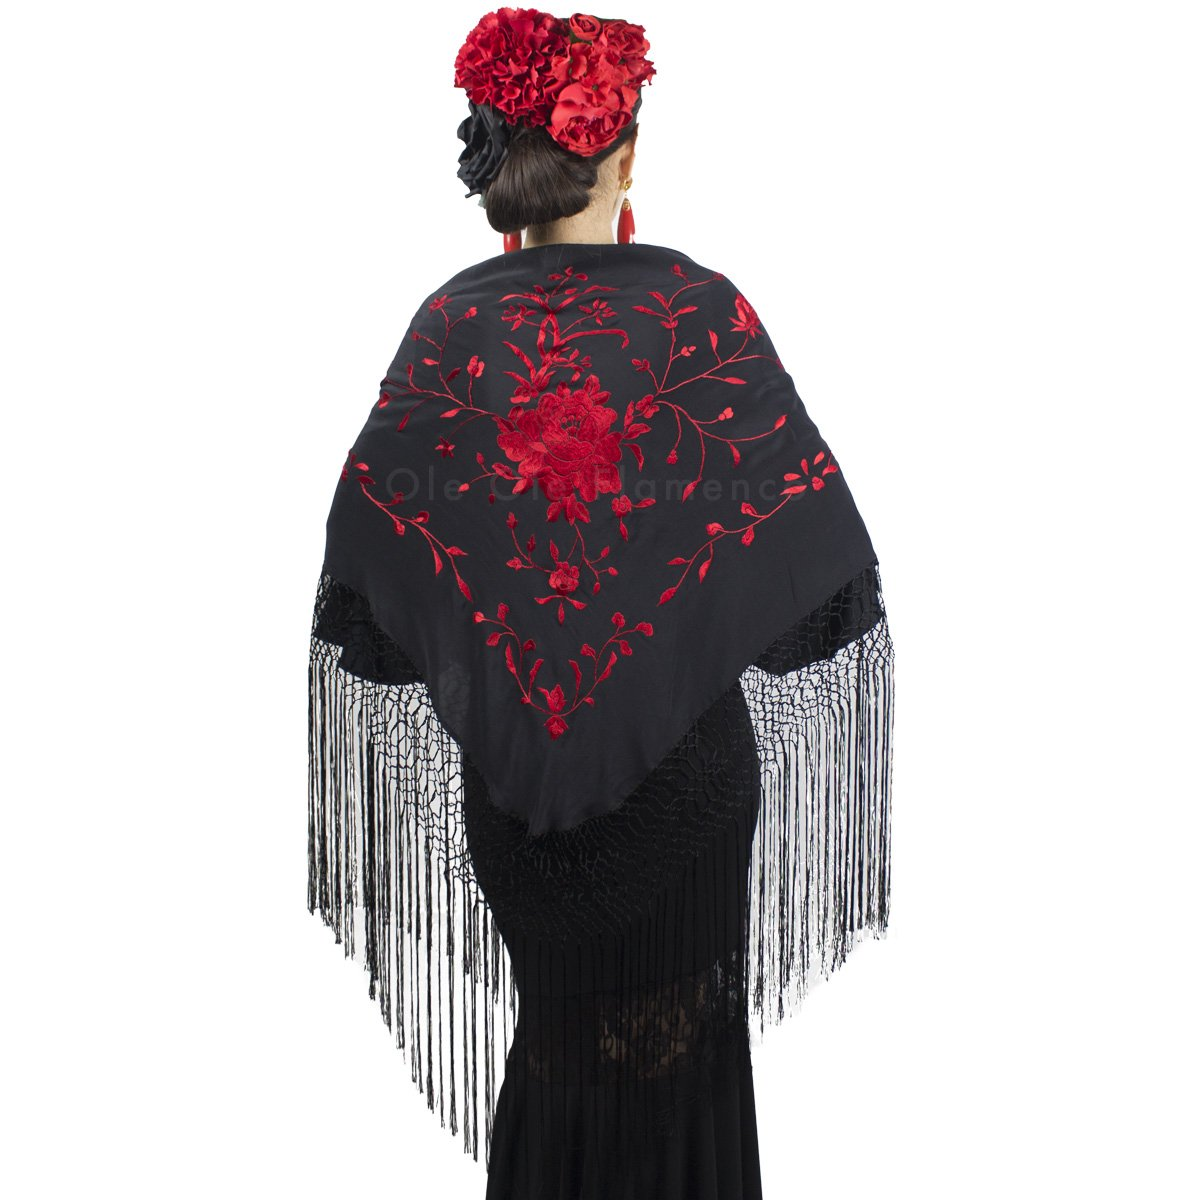 Ole Ole Flamenco Spanish Shawl Triangle Black Pico Made of 100% Silk Hand Embroidered by Spanish Artisans with Red Roses Silk Thread for Women Size 110 x 180 cm Without the Fringes